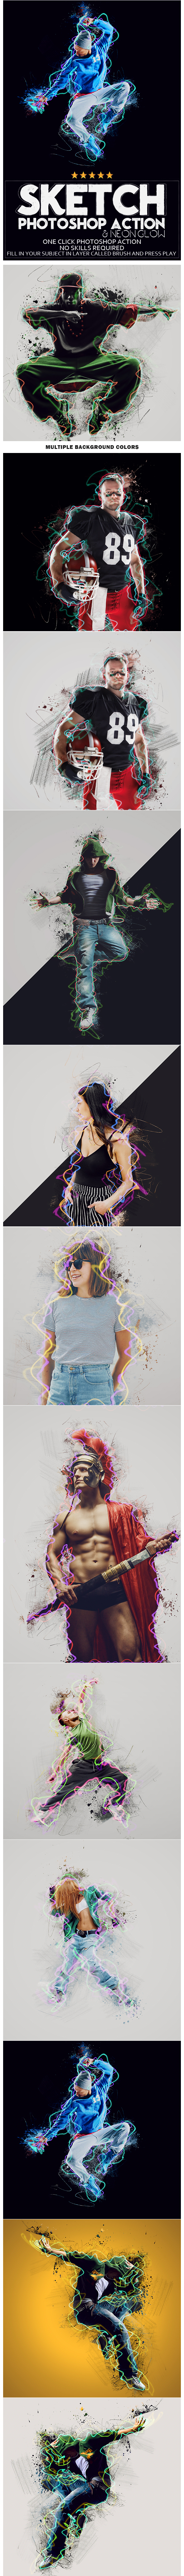 GraphicRiver Sketch Photoshop Action 20652201